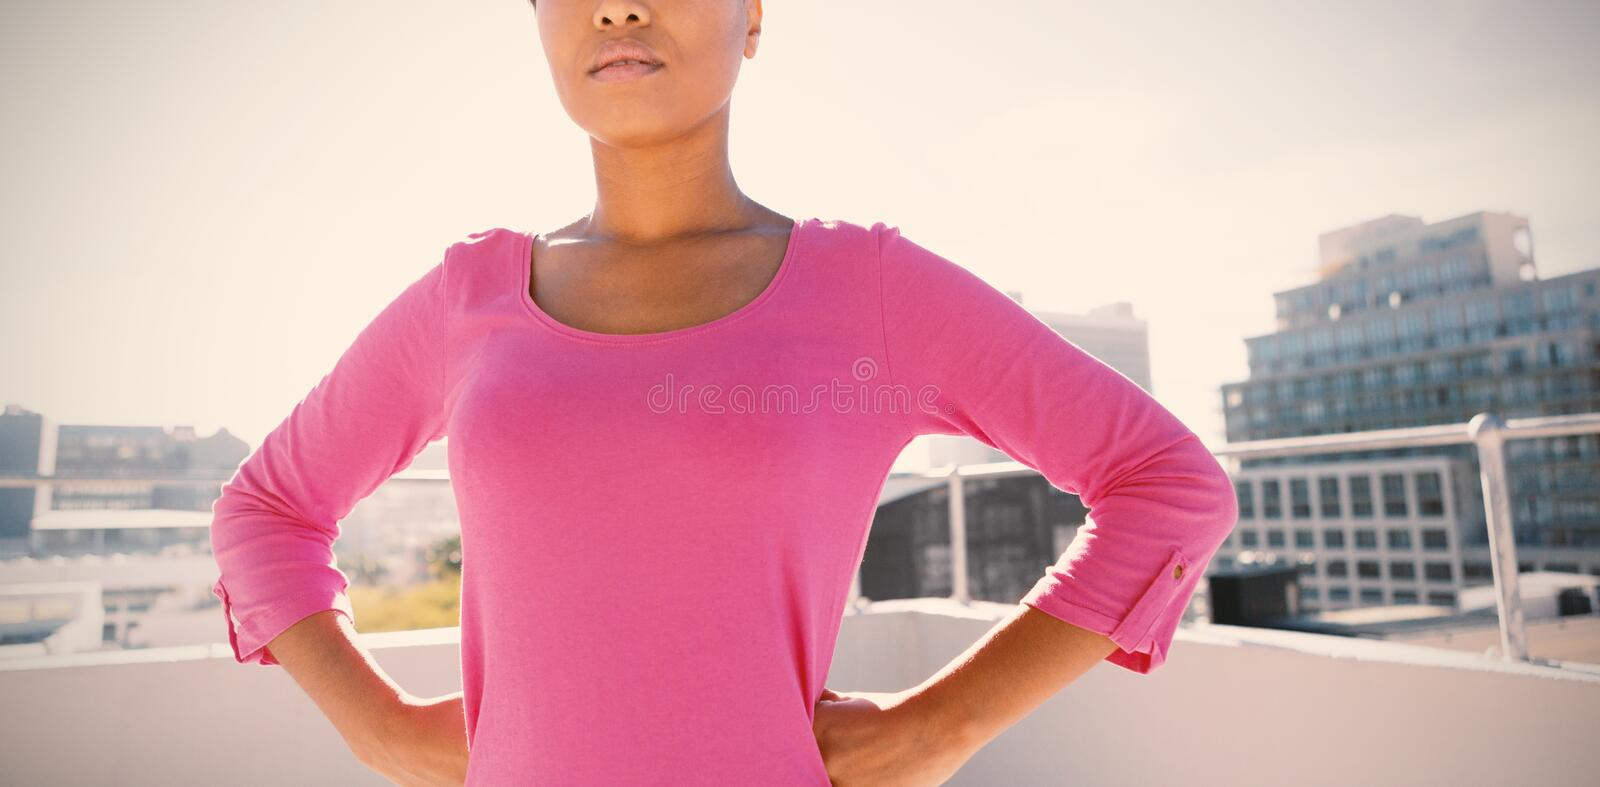 Serious looking woman standing confident for breast cancer awareness royalty free stock photography